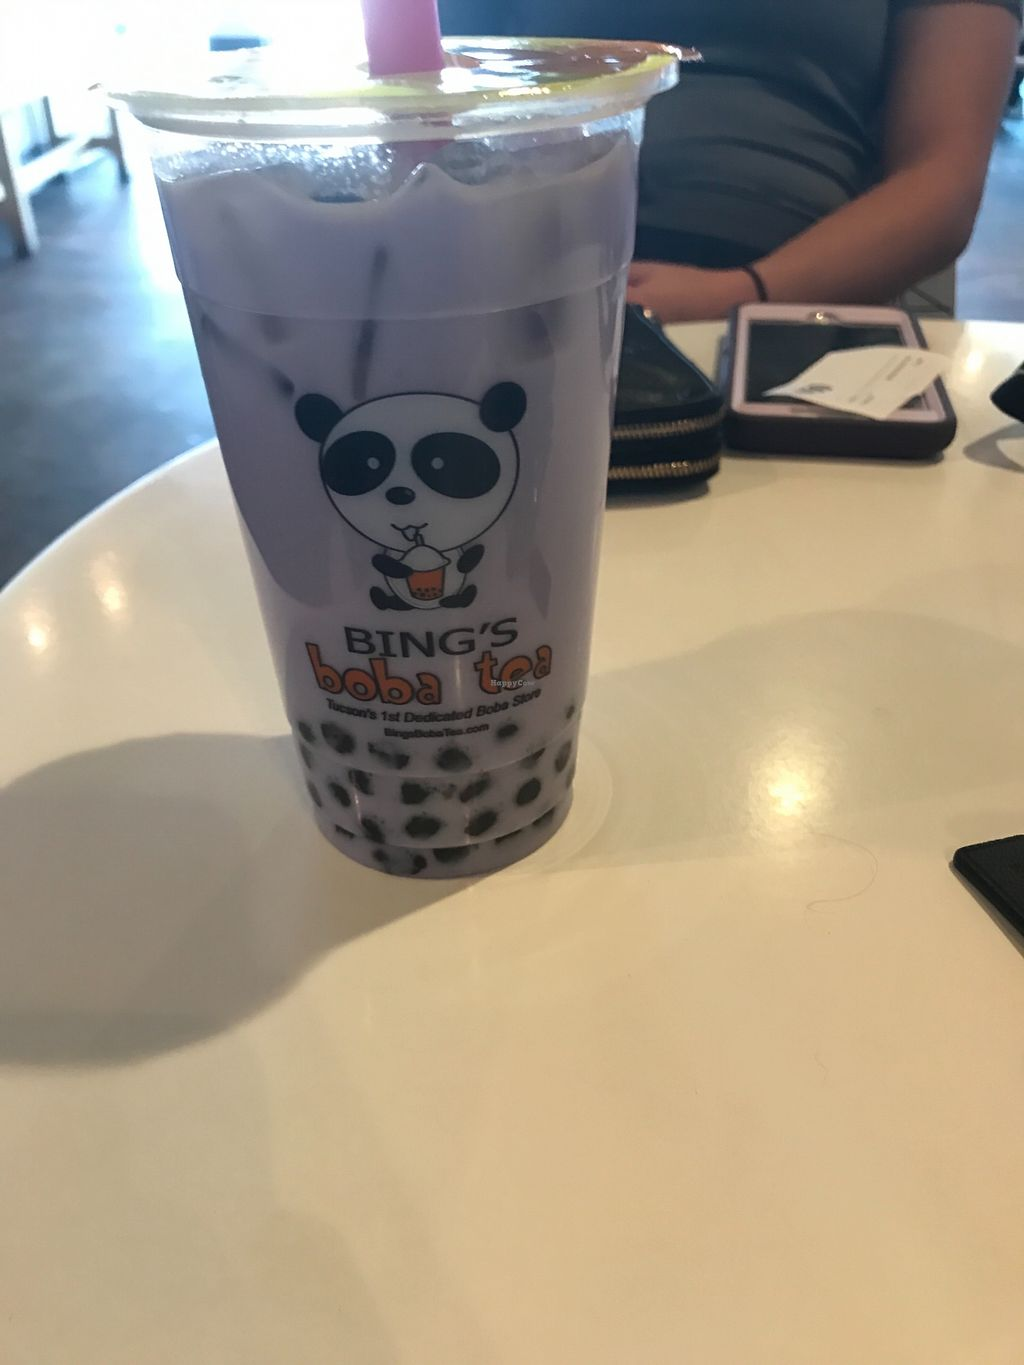 """Photo of Bing's Boba Tea  by <a href=""""/members/profile/MaceyRose"""">MaceyRose</a> <br/>Taro tea with coconut milk and boba  <br/> February 9, 2018  - <a href='/contact/abuse/image/111664/356905'>Report</a>"""